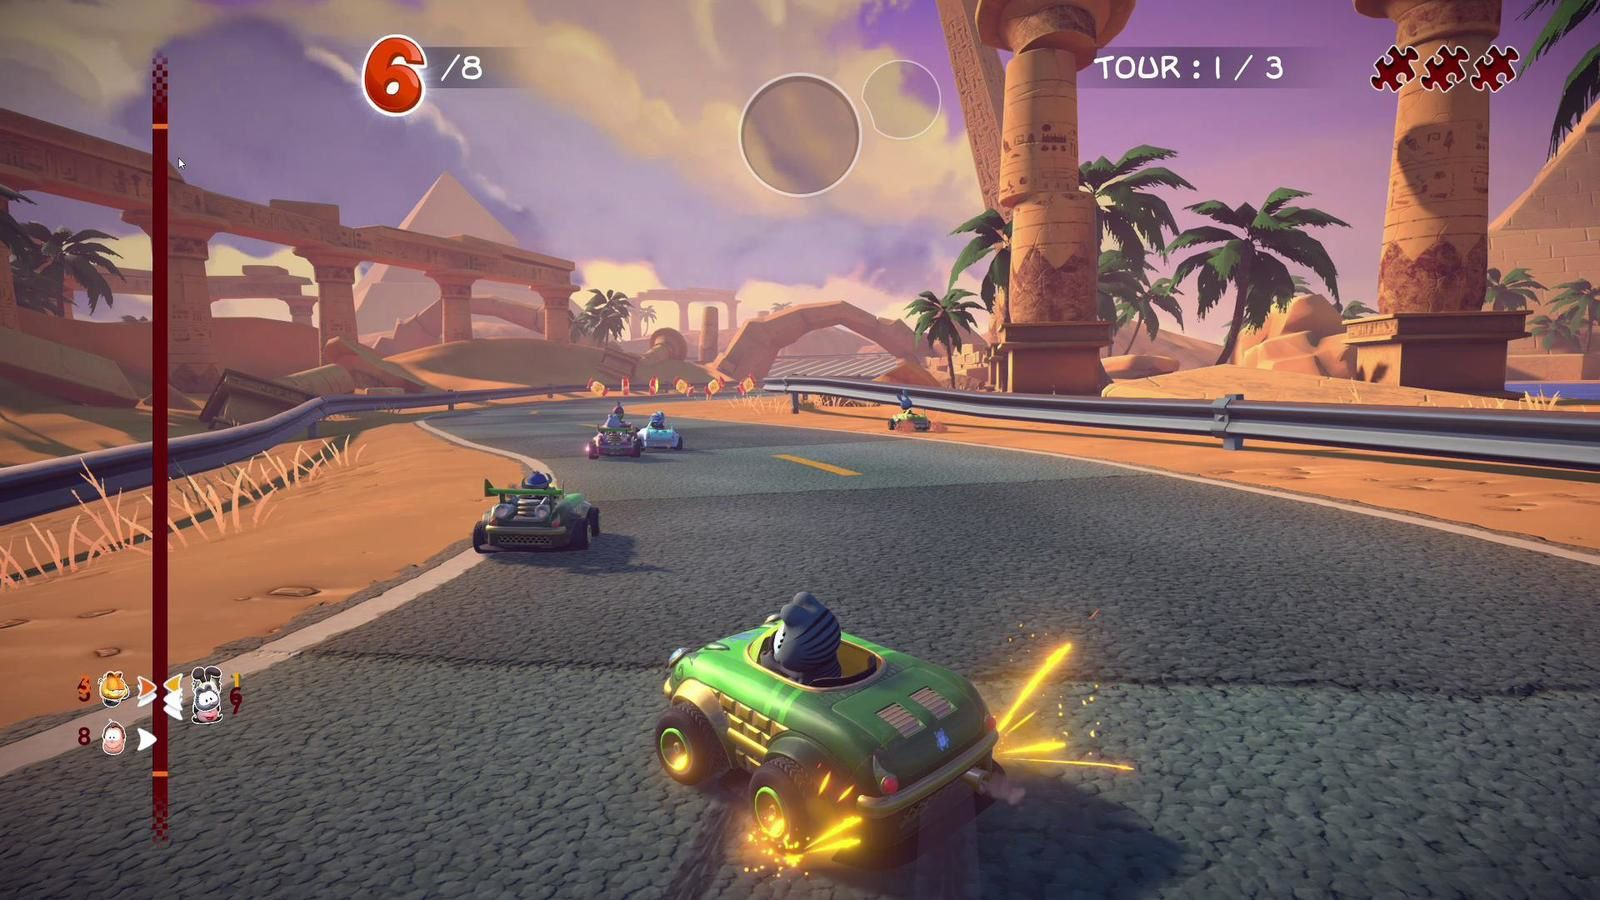 Garfield plus fort que Mario Kart ?!